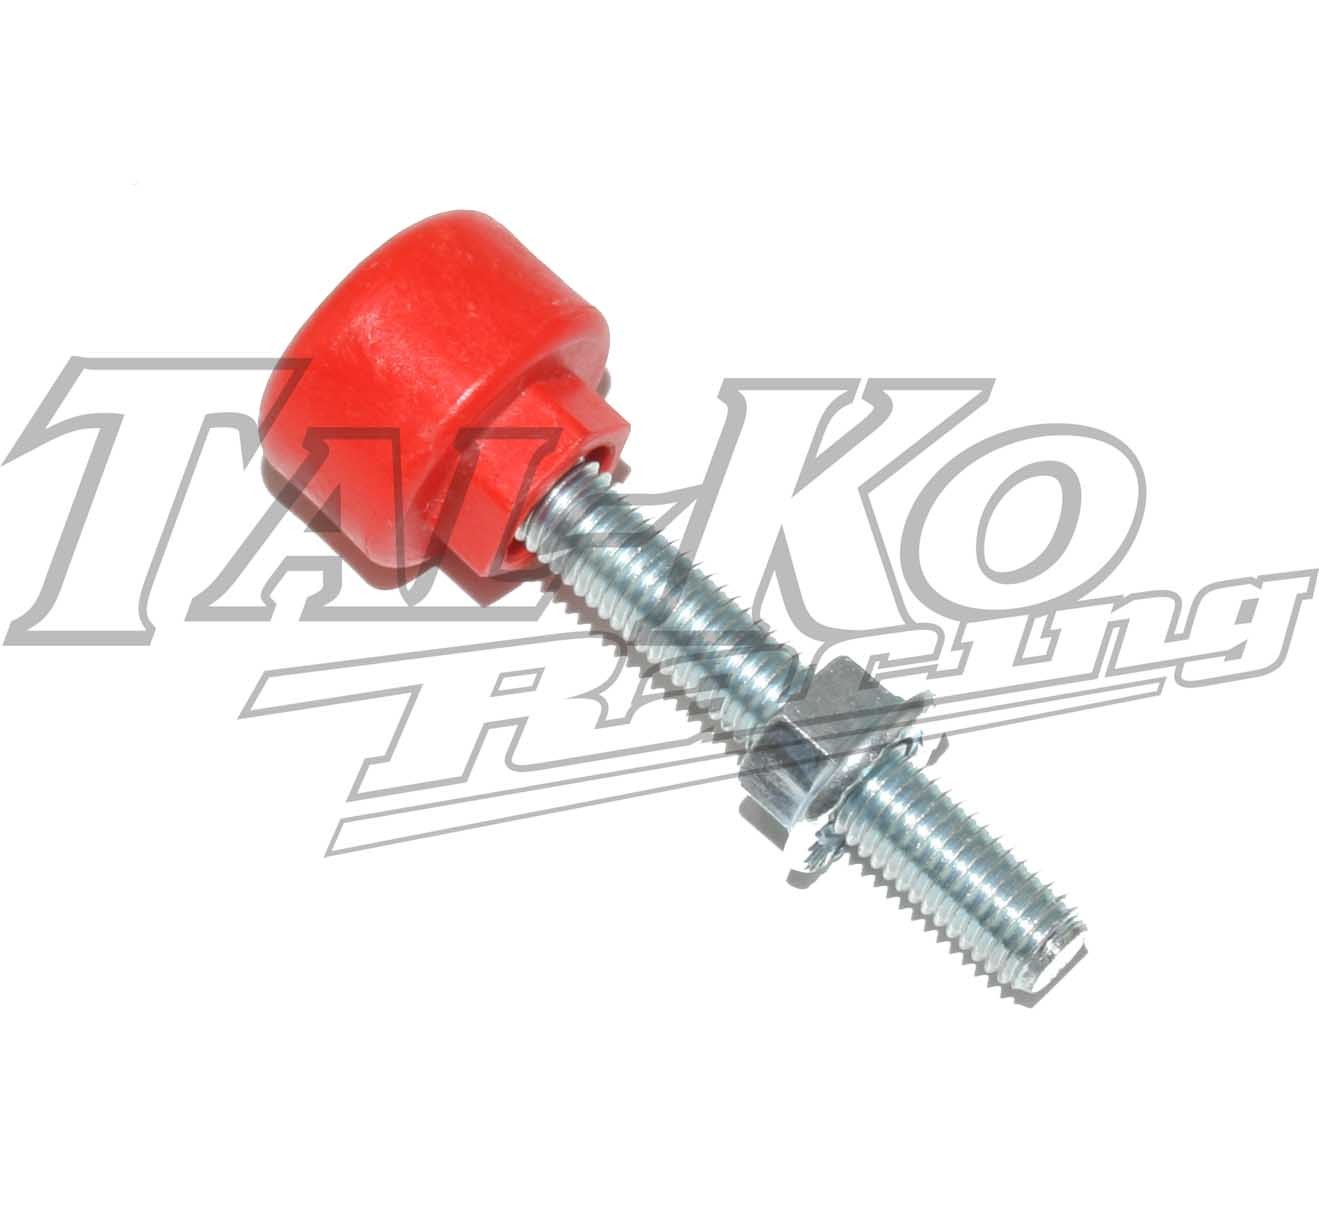 R/R ENGINE MOUNT ADJUSTER BOLT M10 x 85